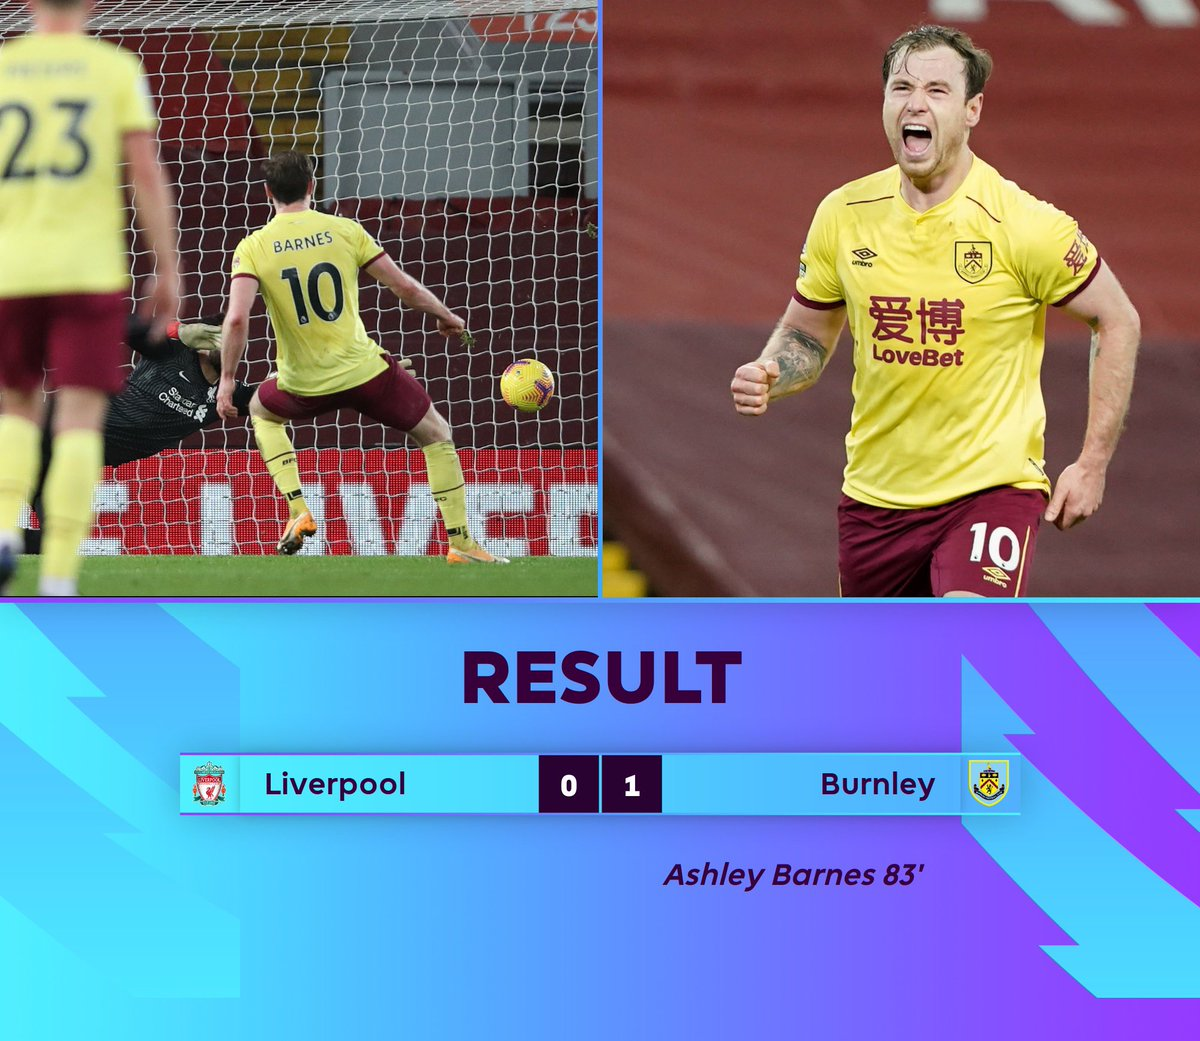 Liverpool suffer their first defeat in 68 Premier League matches at Anfield (W55 D13) since April 2017, three years and 273 days ago.  Meanwhile Burnley secure a MASSIVE win for their season‼️  #LIVBUR #PL